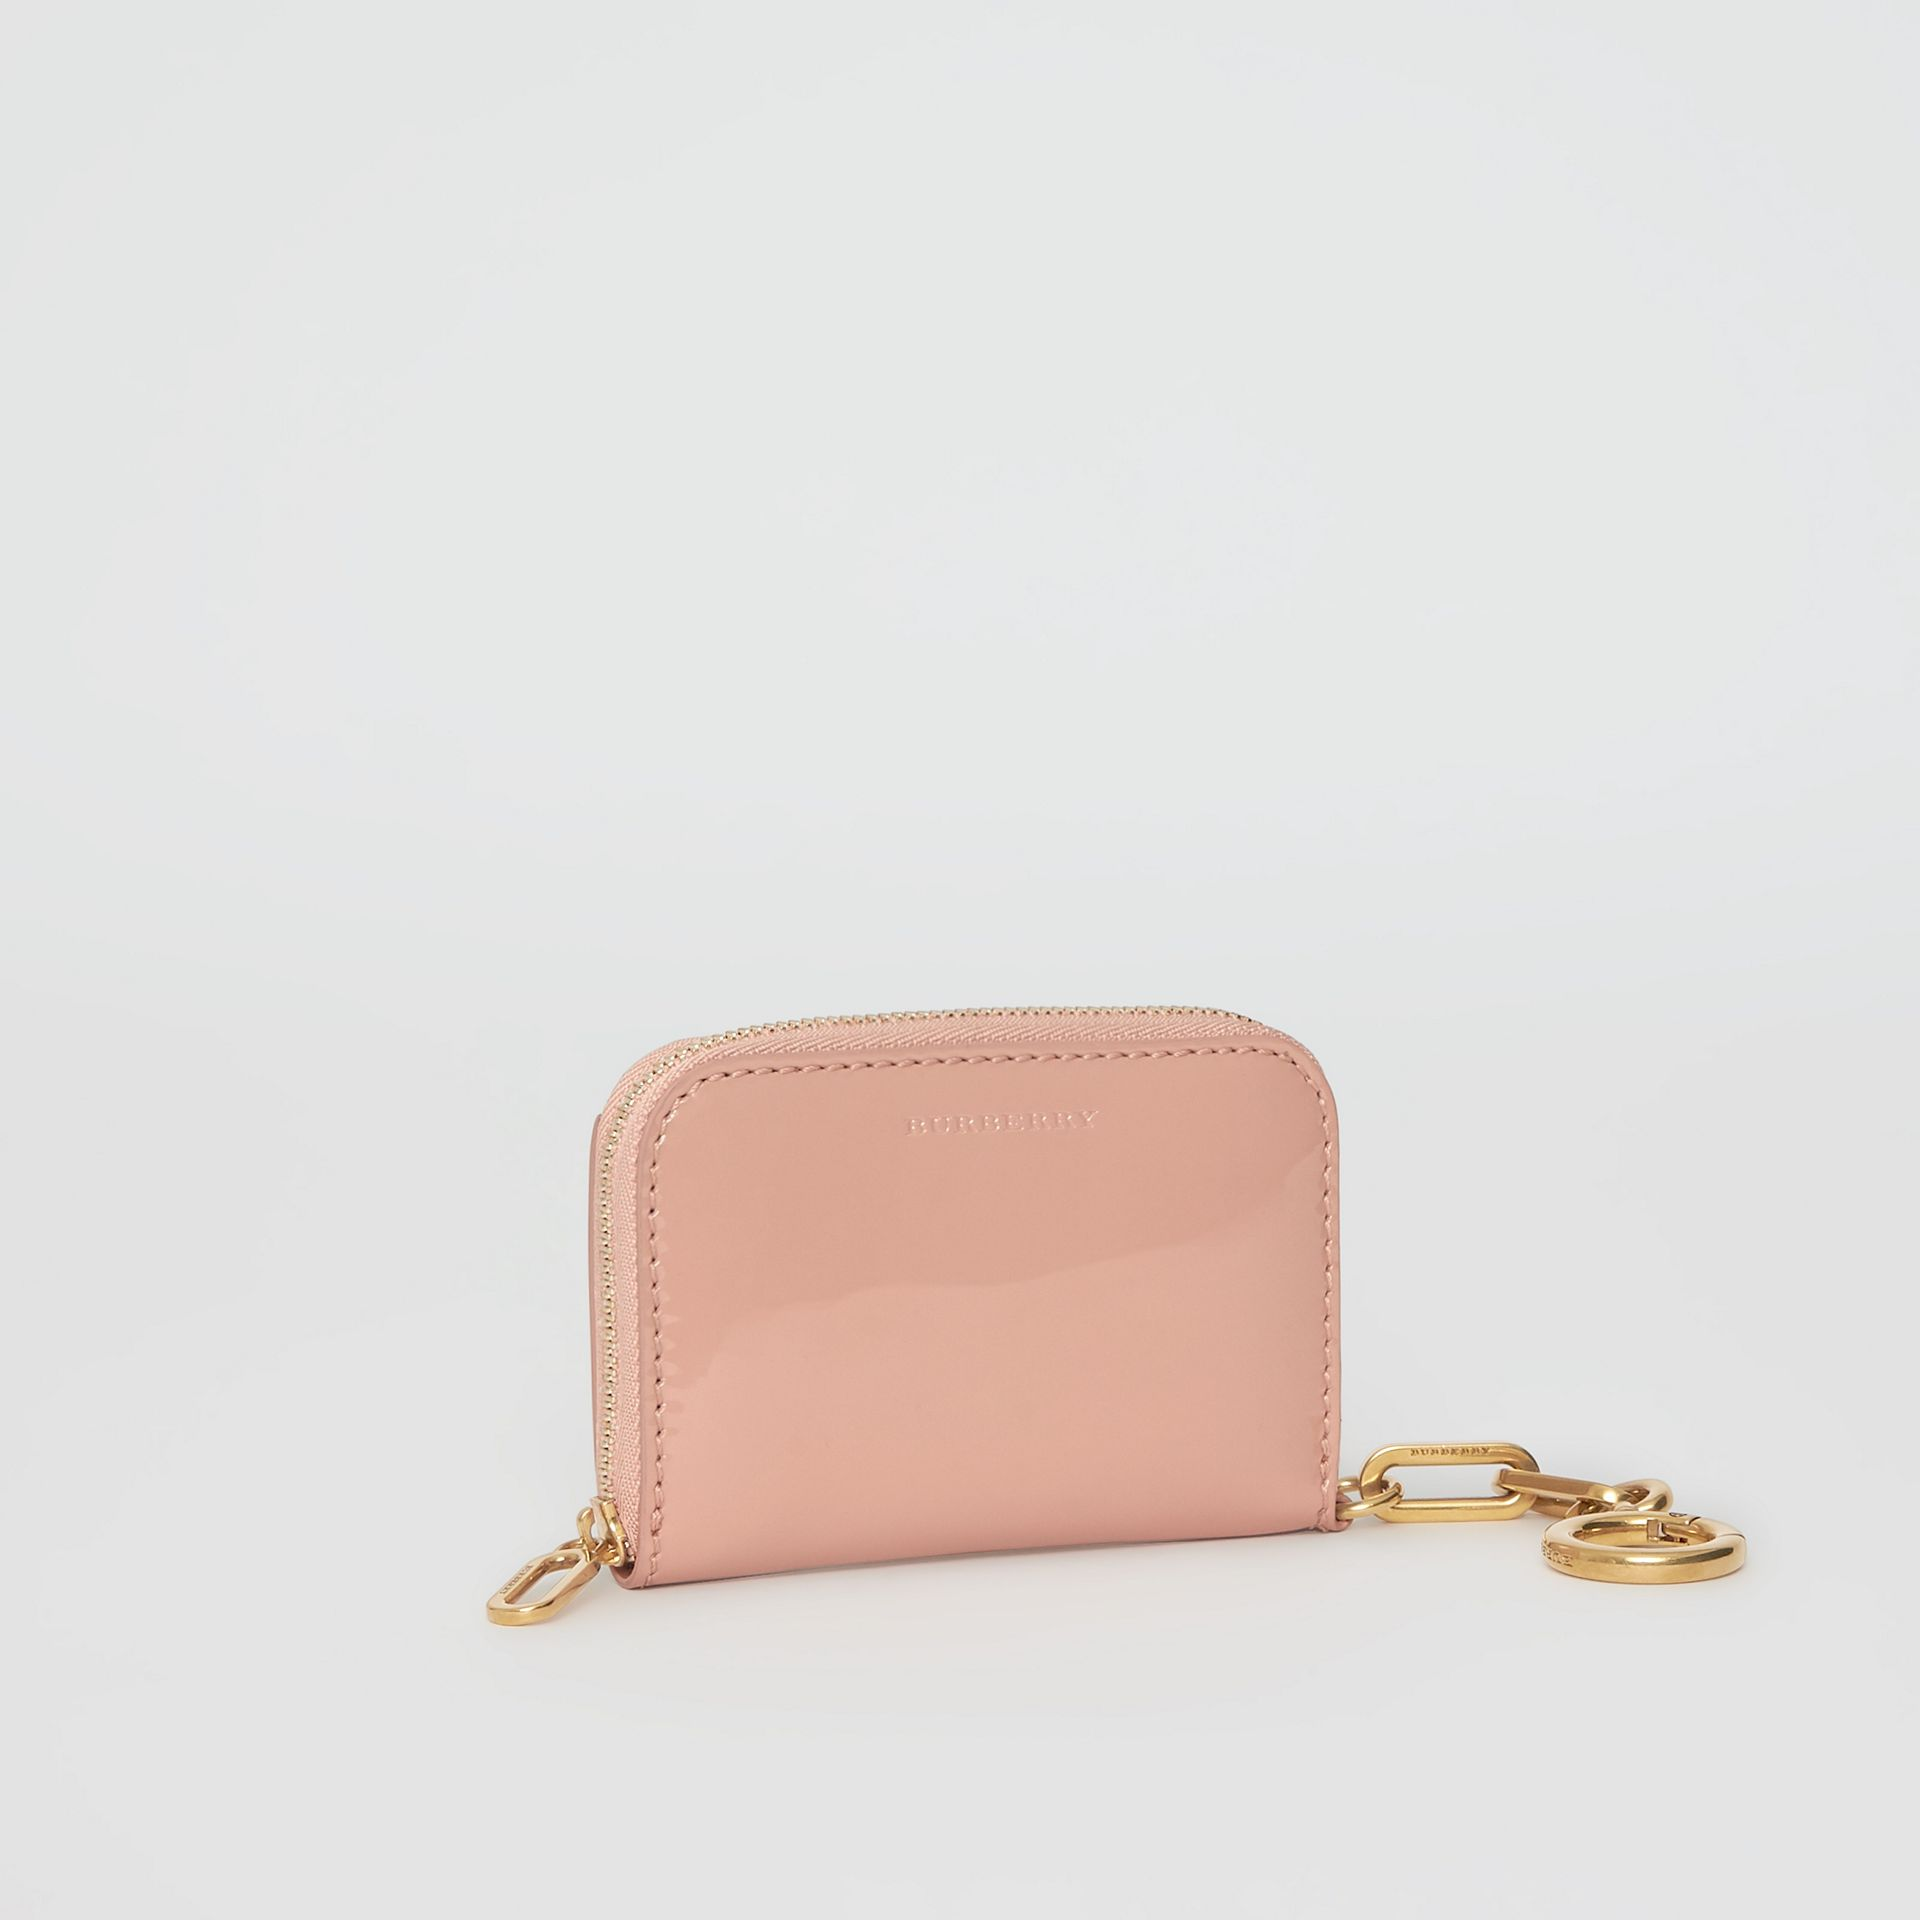 Link Detail Patent Leather Ziparound Wallet in Pale Fawn Pink - Women | Burberry - gallery image 4